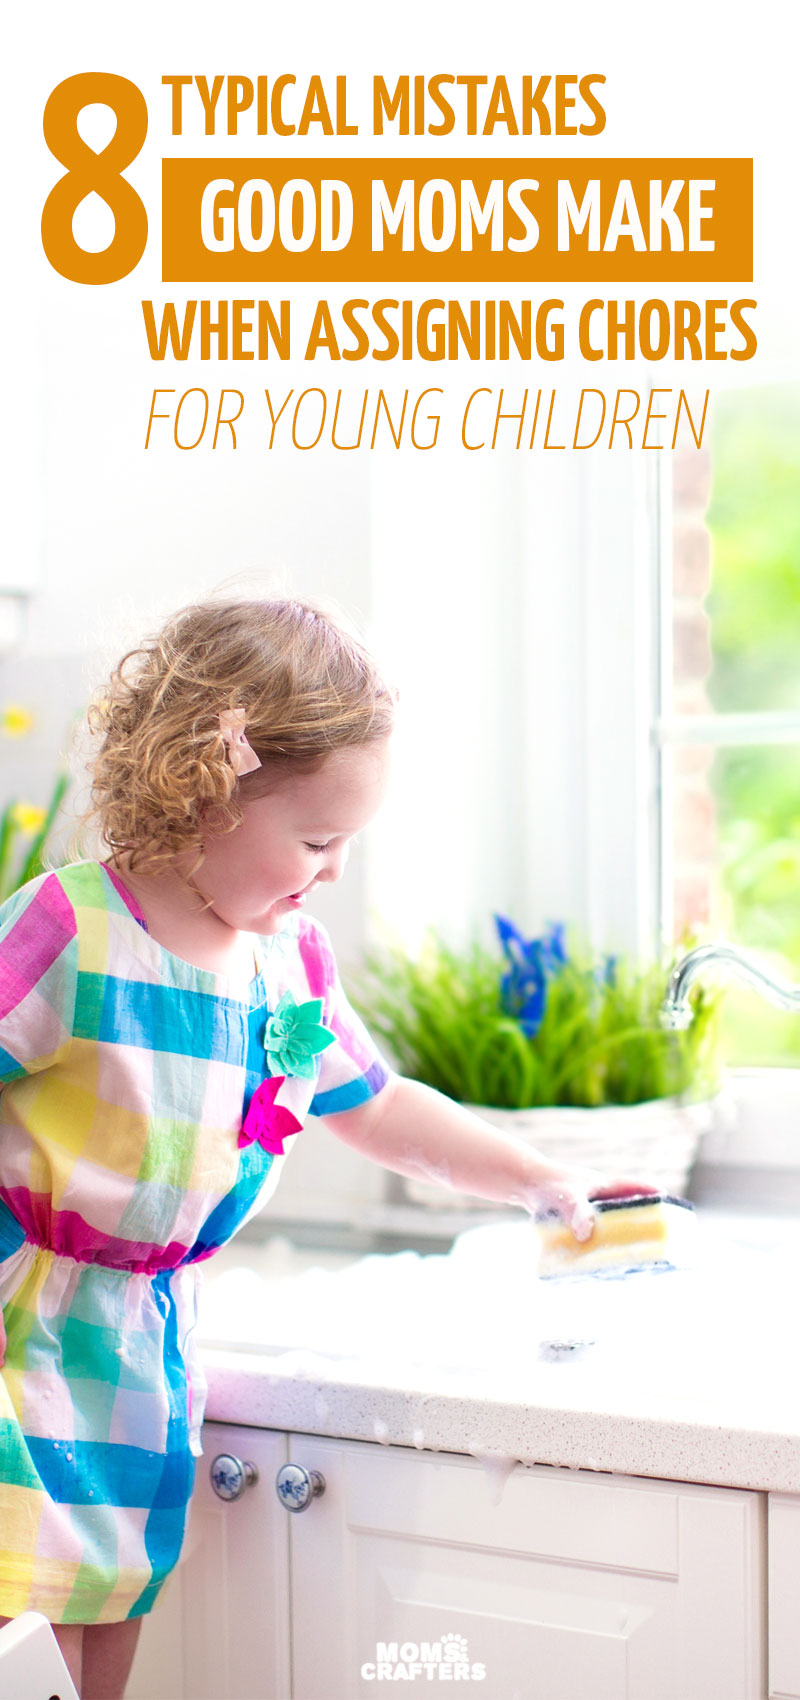 Parenting tips for how to get kids to do chores. These mom hacks will teach you tricks for getting toddlers and preschoolers to clean up toys and complete chores